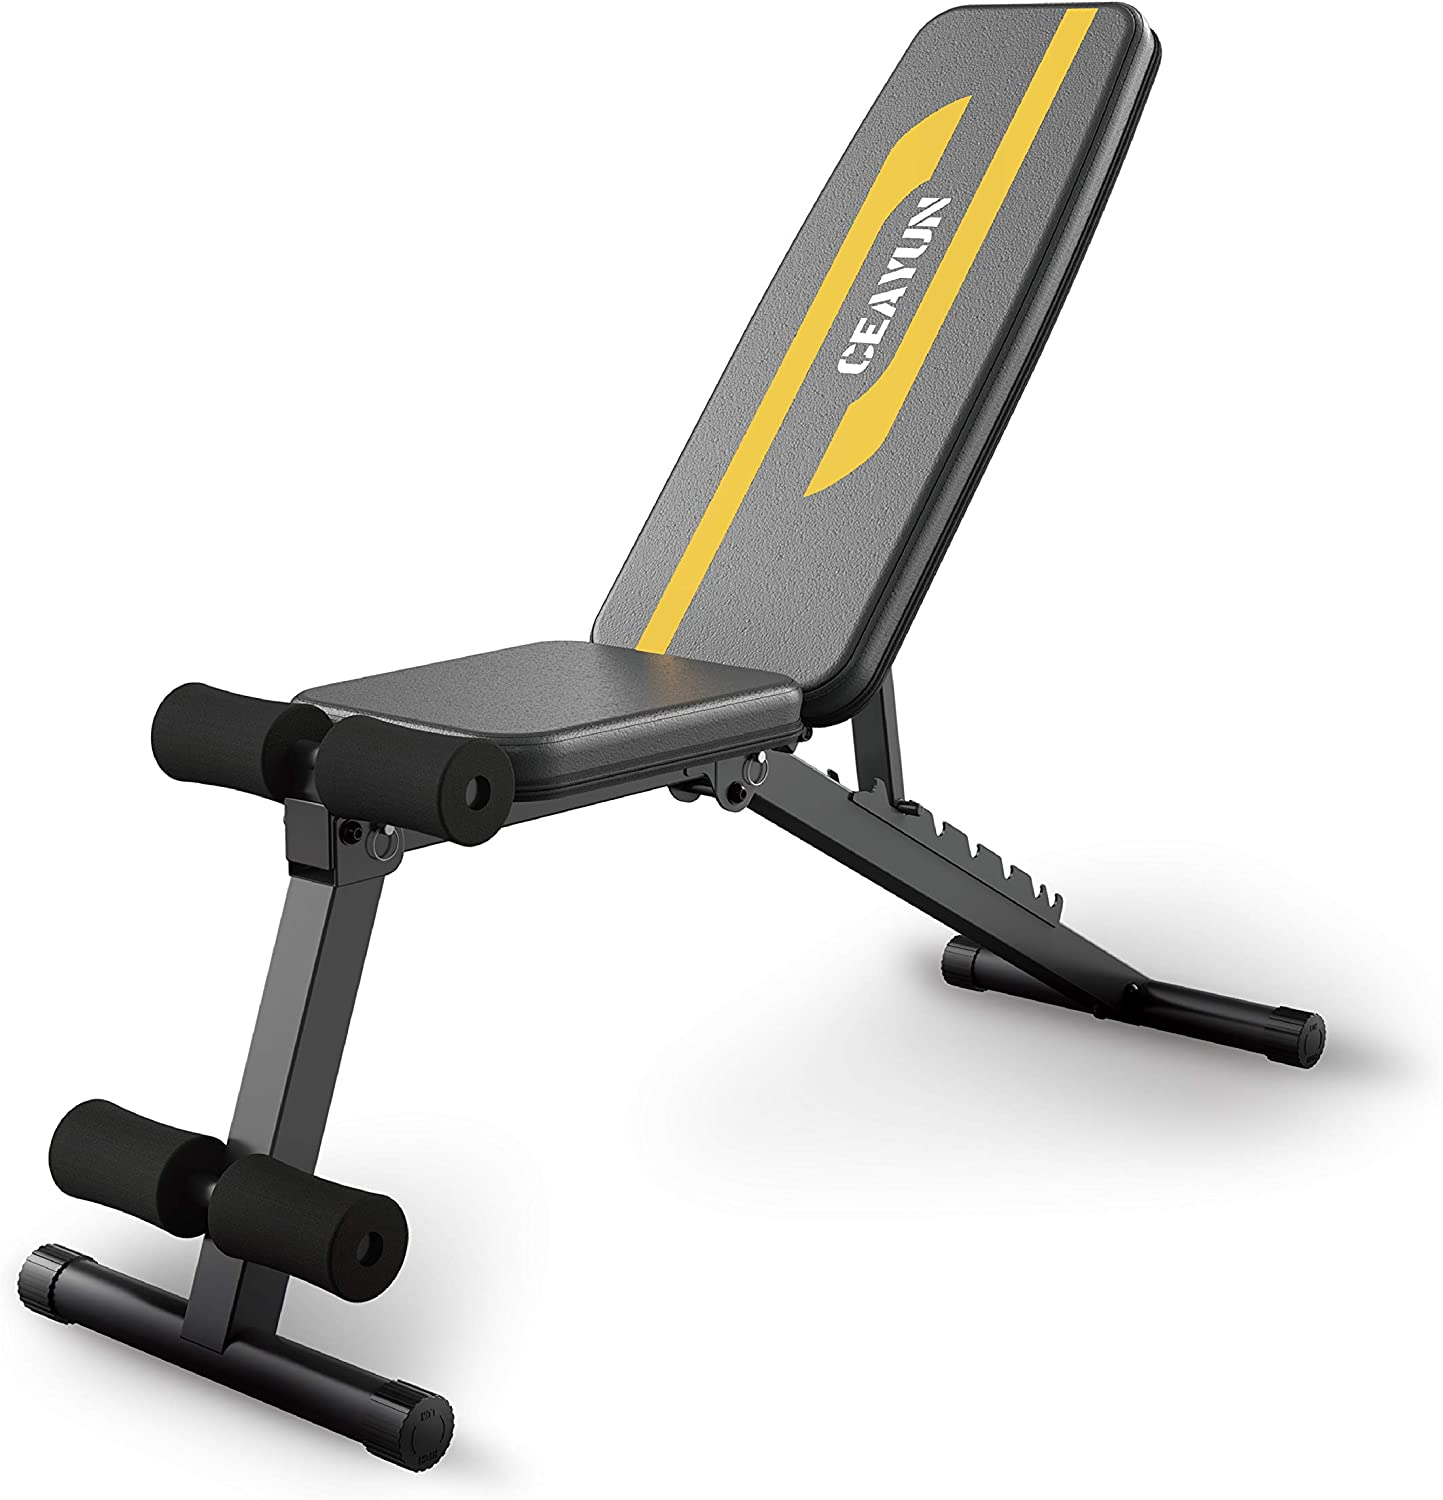 Adjustable Weight Bench, Strength Training Bench for Full Body Workout & Home Gym